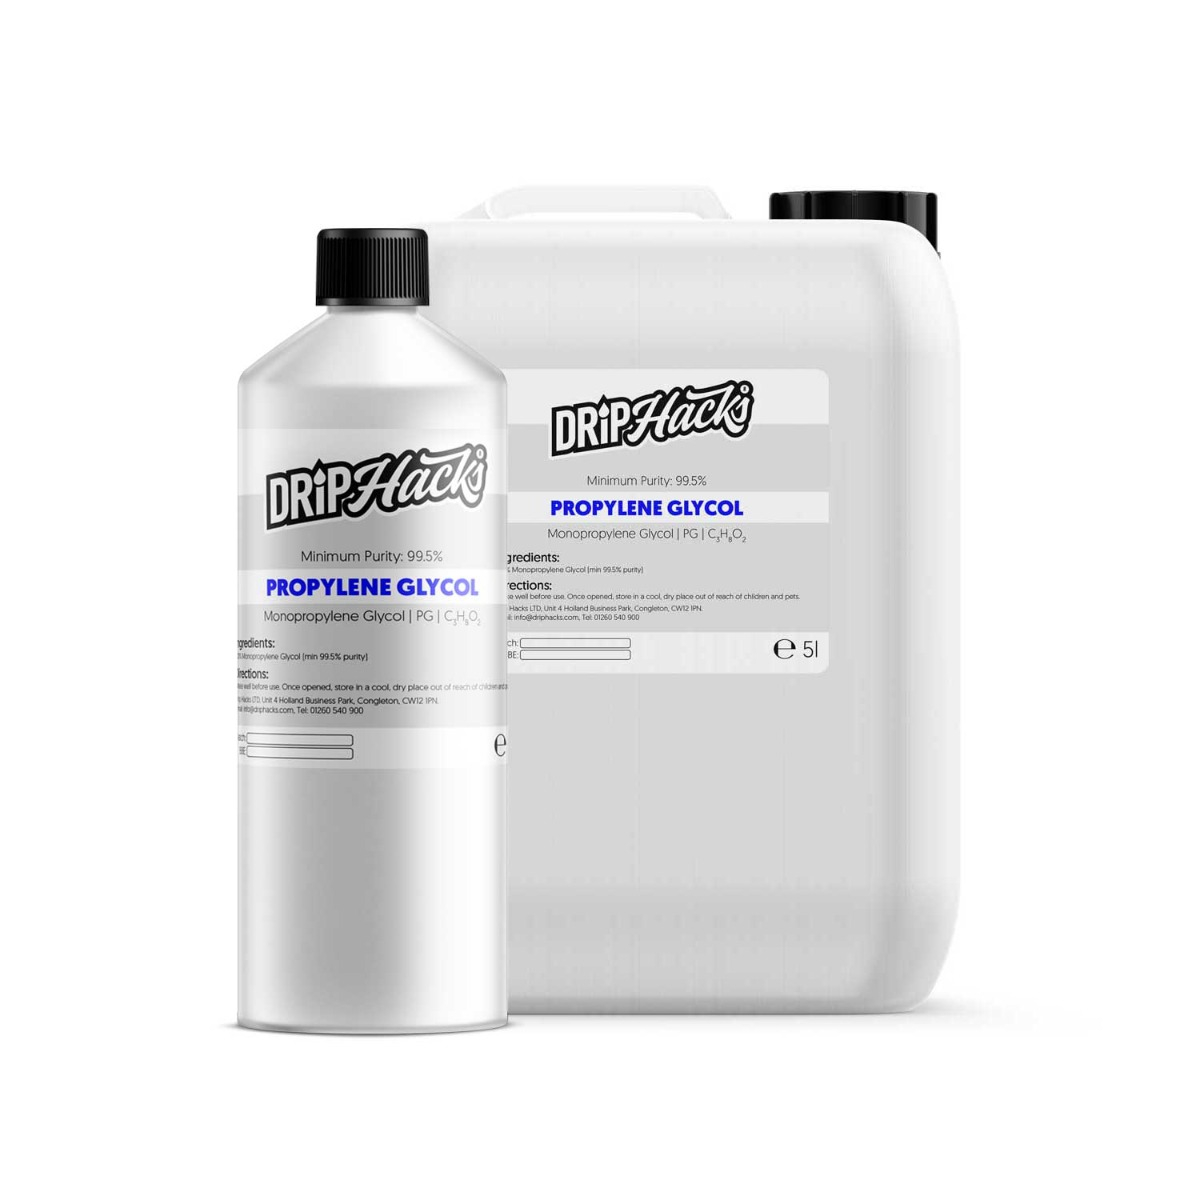 Drip Hacks 250ml Propylene Glycol – £3.96